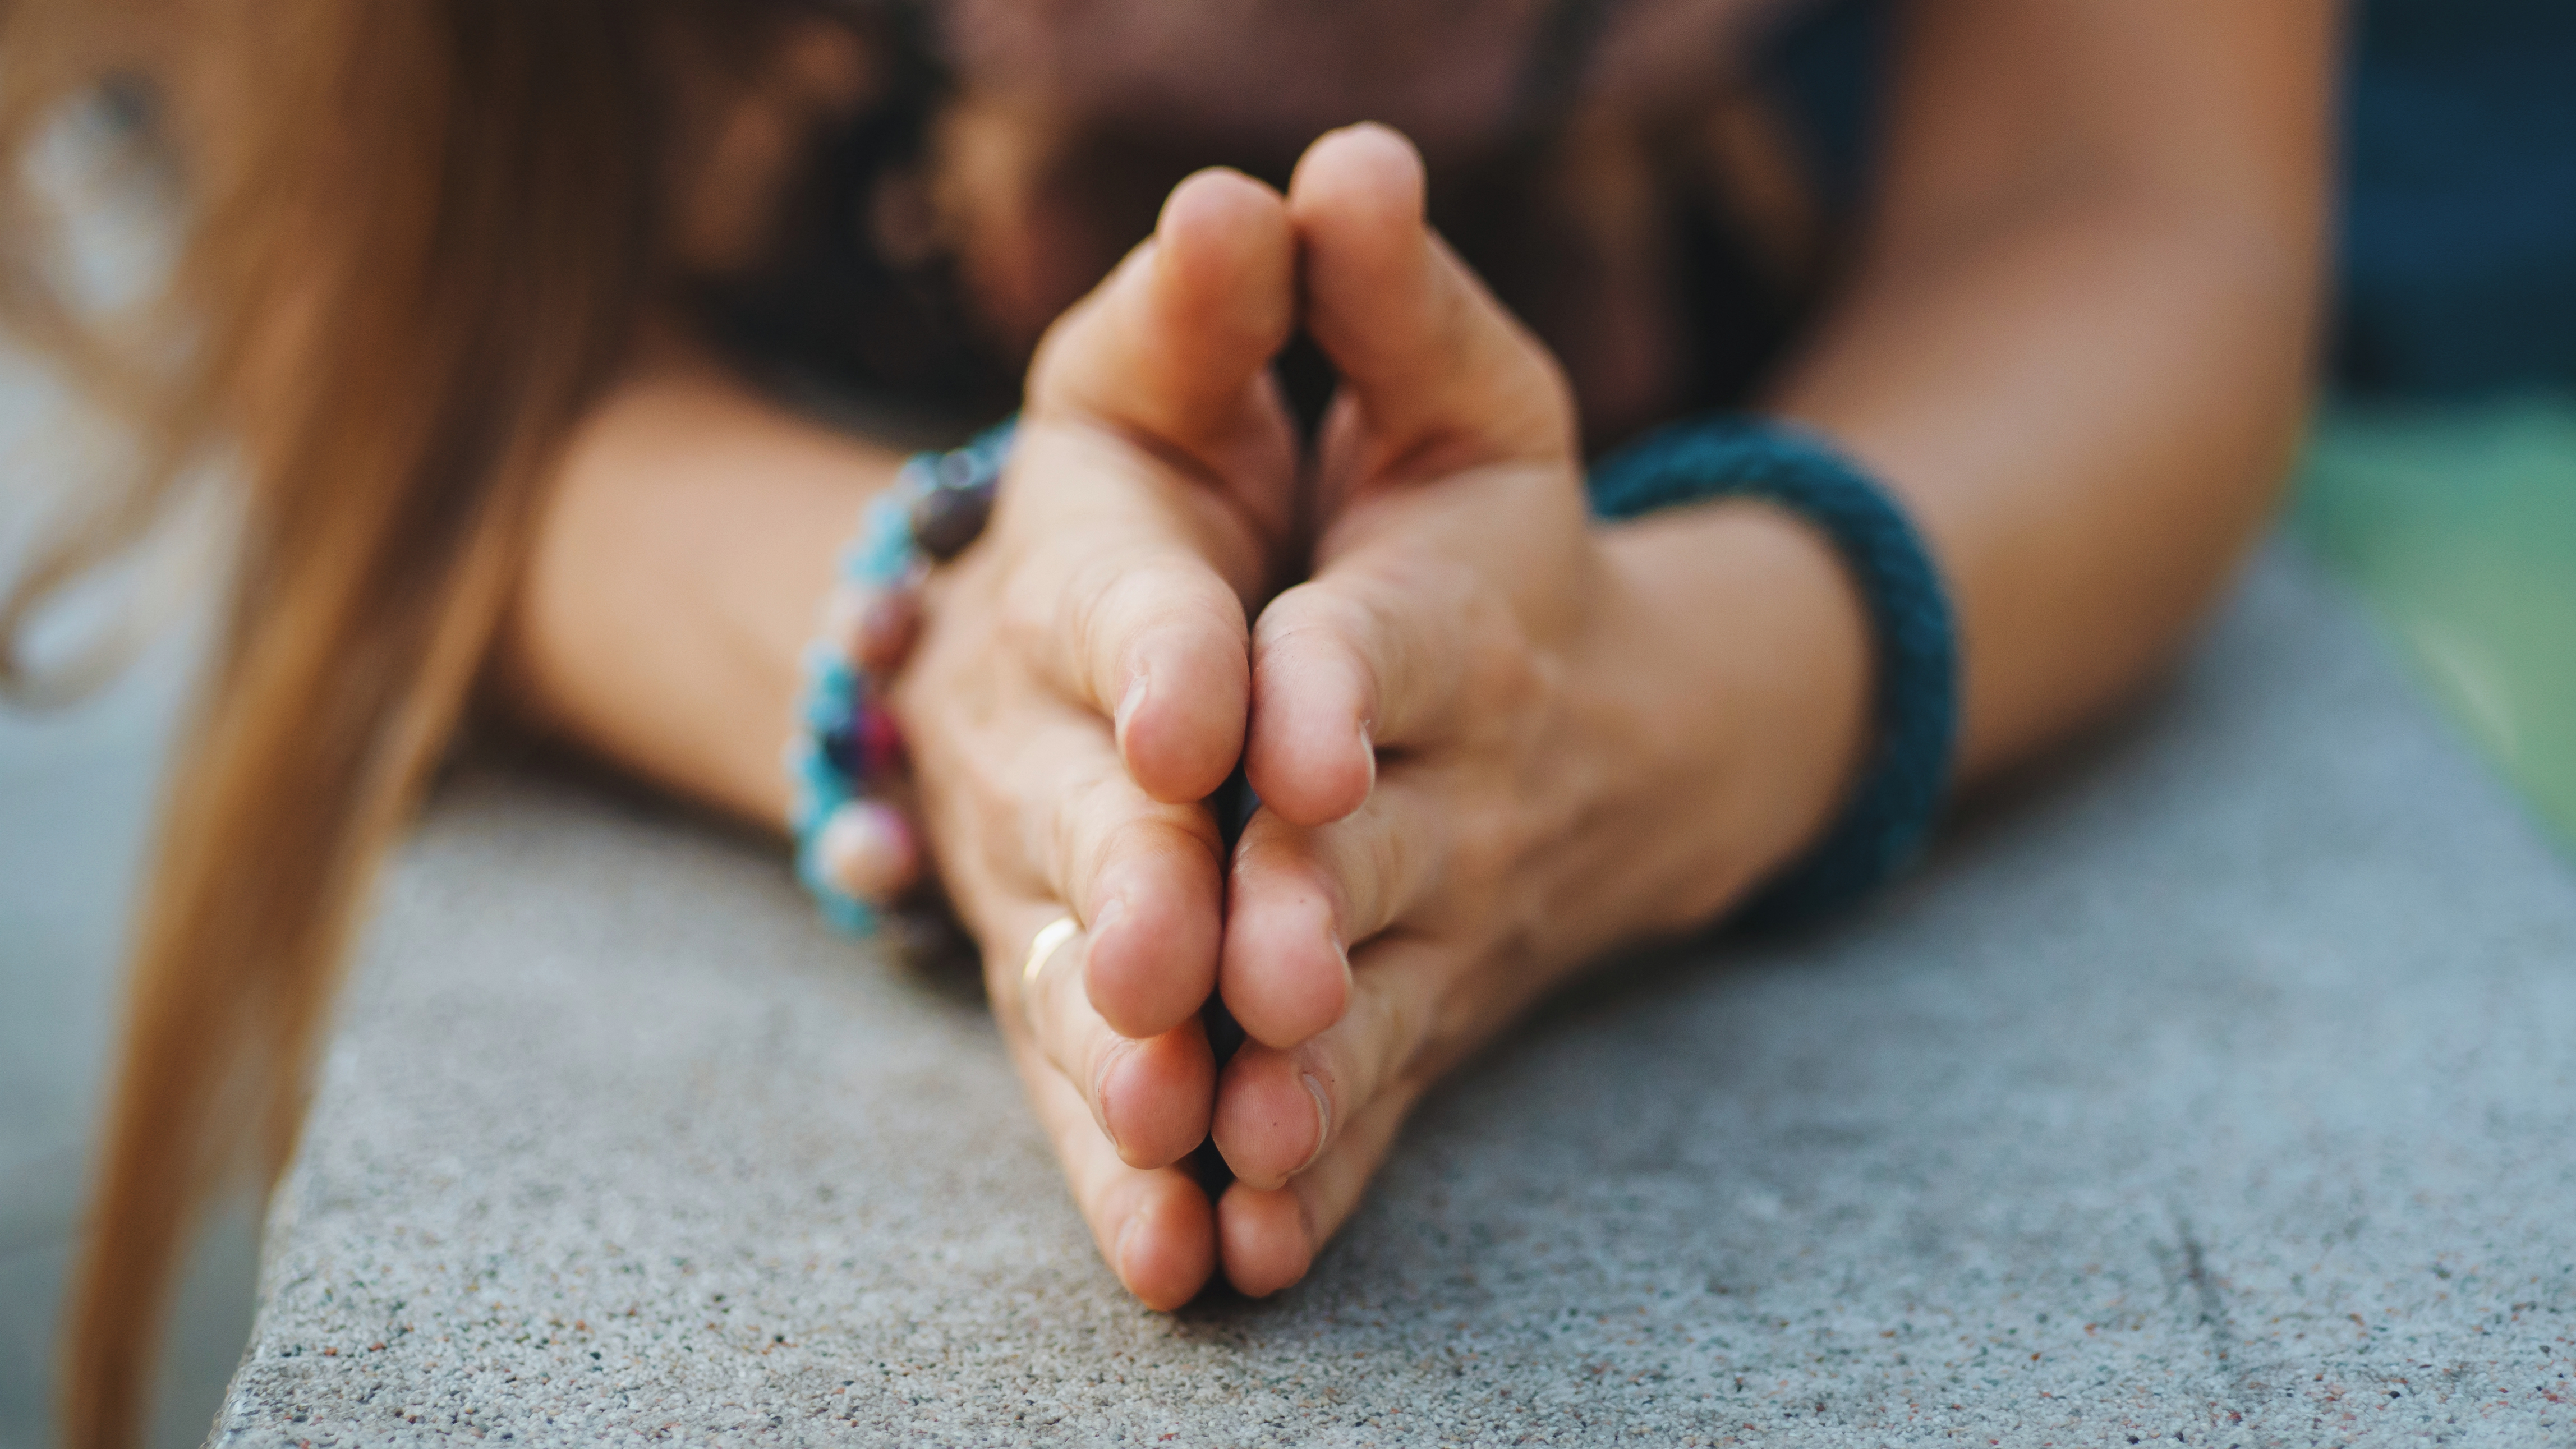 a young women's hands clasped together in a sign of prayer - wearing colorful bracelets